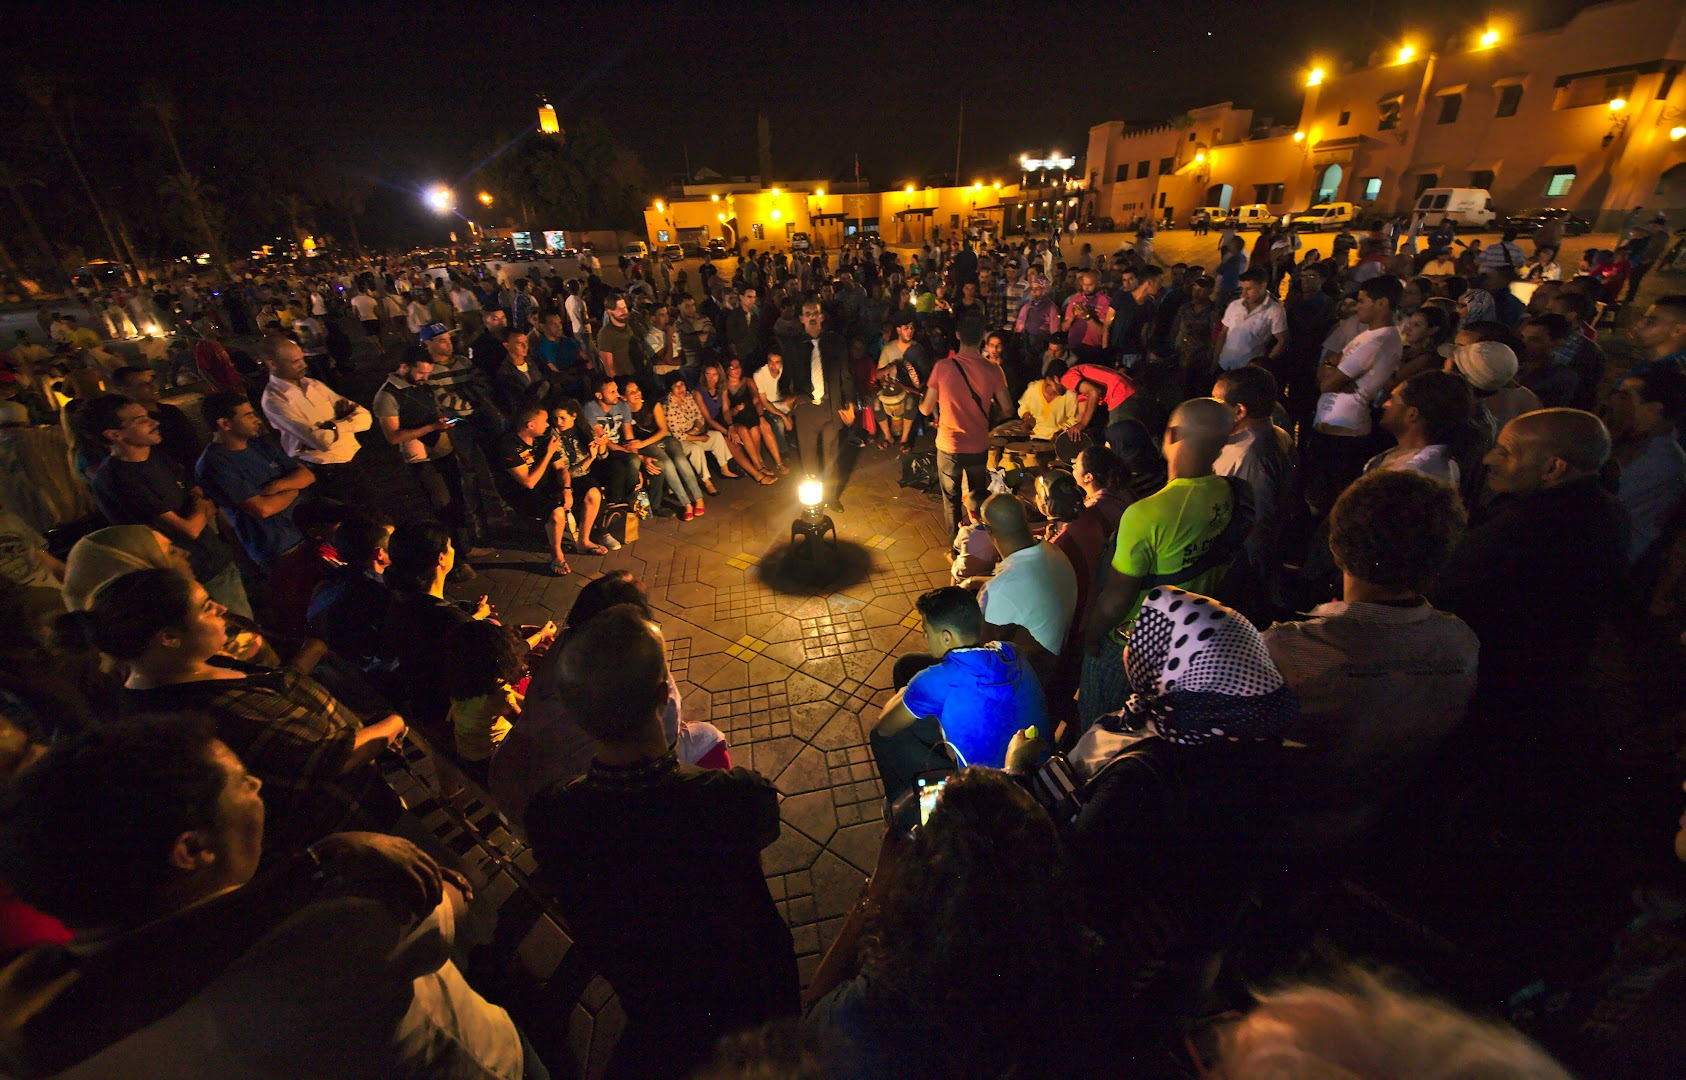 Lots of performances at the main square of Marrakech